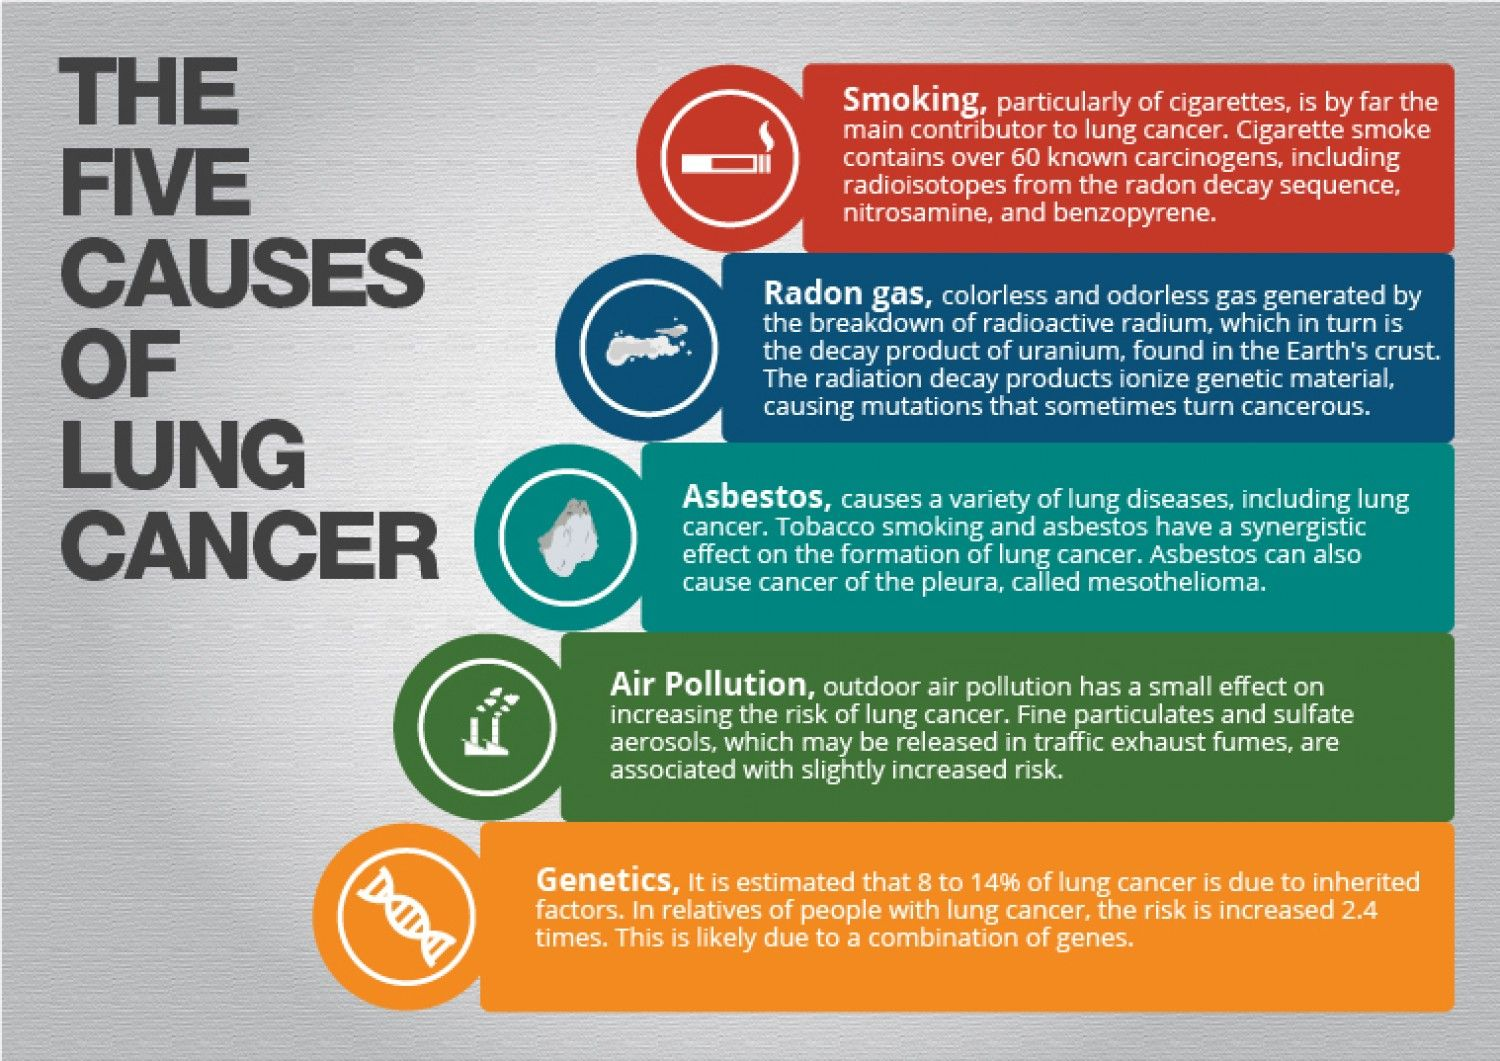 lung cancer genetic factors neuroendocrine cancer hospitals